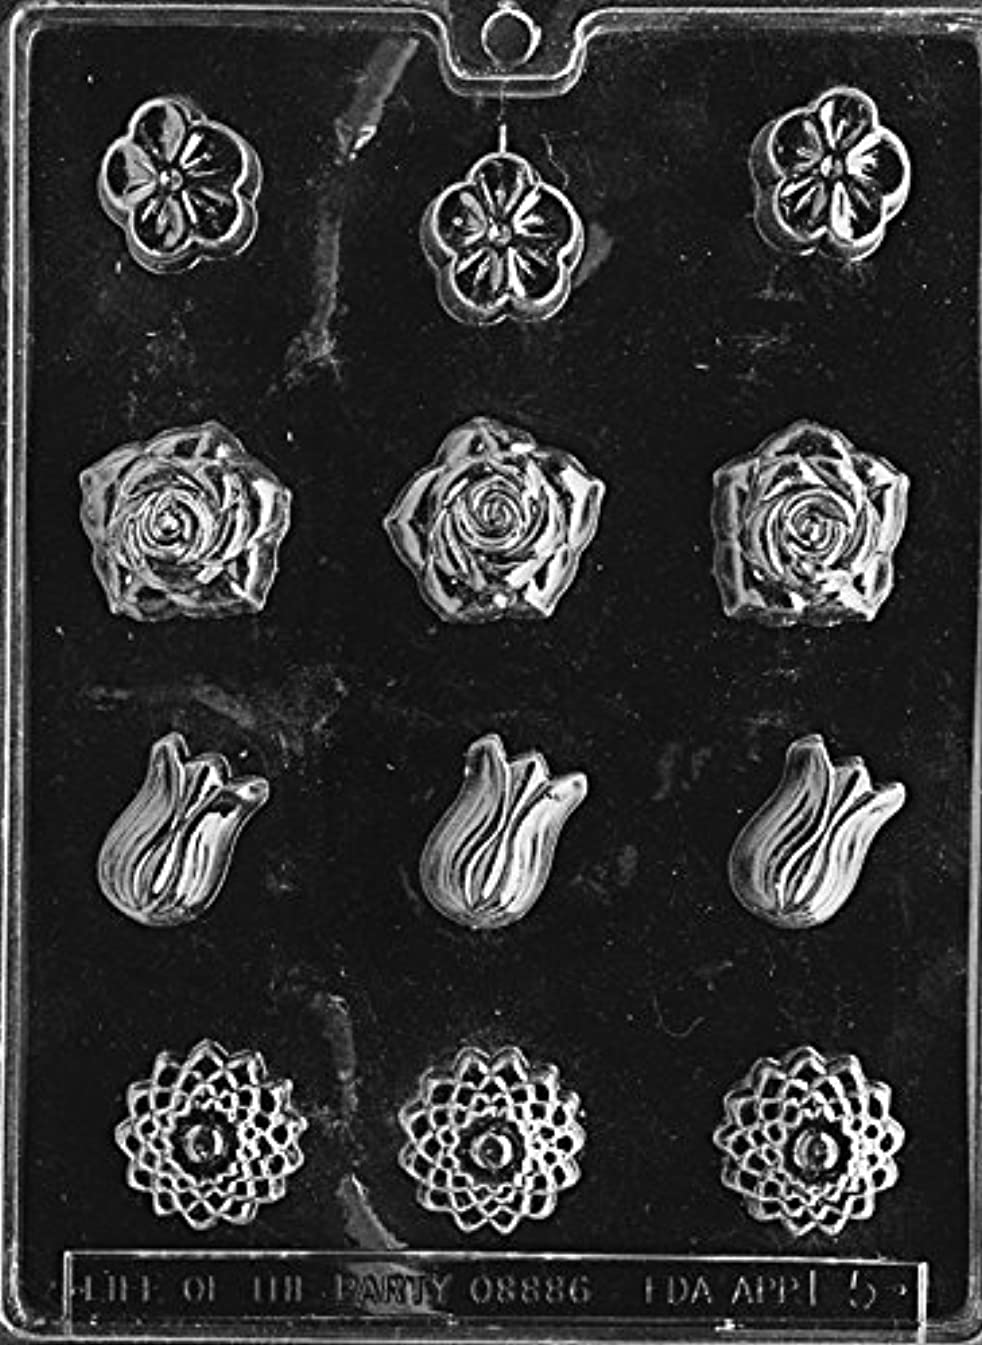 CybrTrayd Fruits and Vegetables Soap Mold, Assorted Flowers with Exclusive Cybrtrayd Copyrighted Soap Molding Instructions